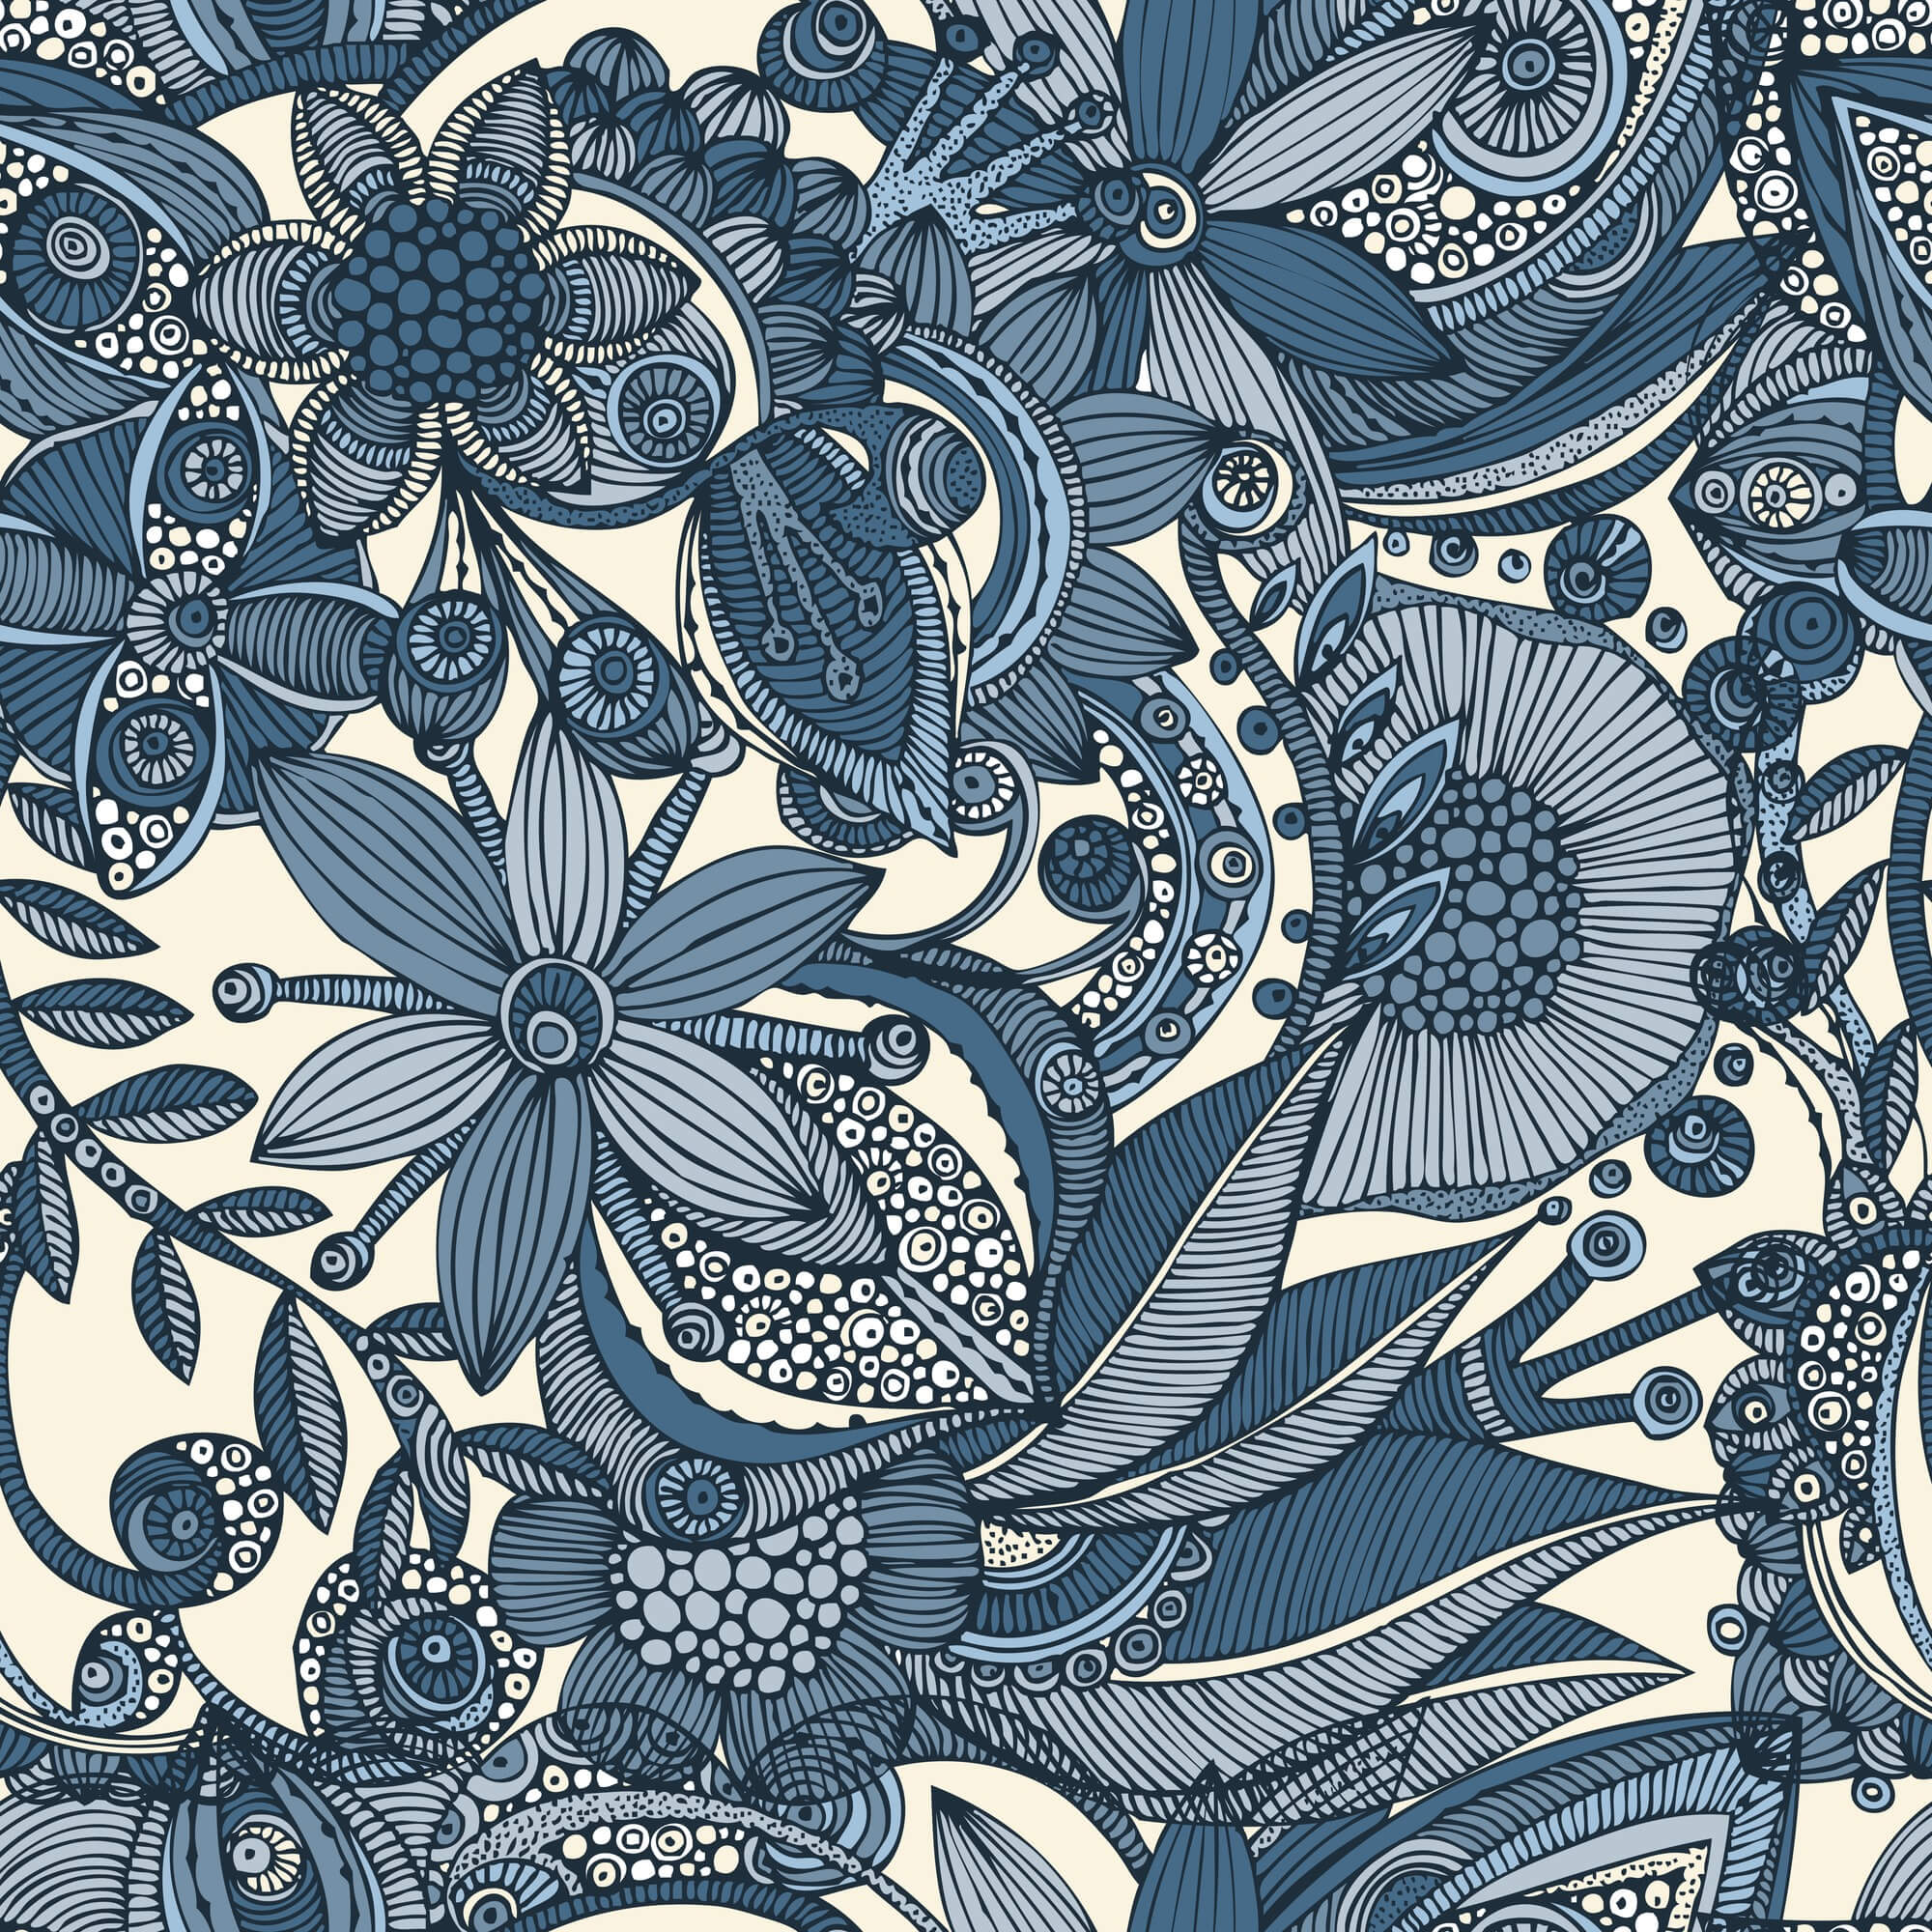 Flowers and doodles Wall Mural & Flowers and doodles Wallpaper